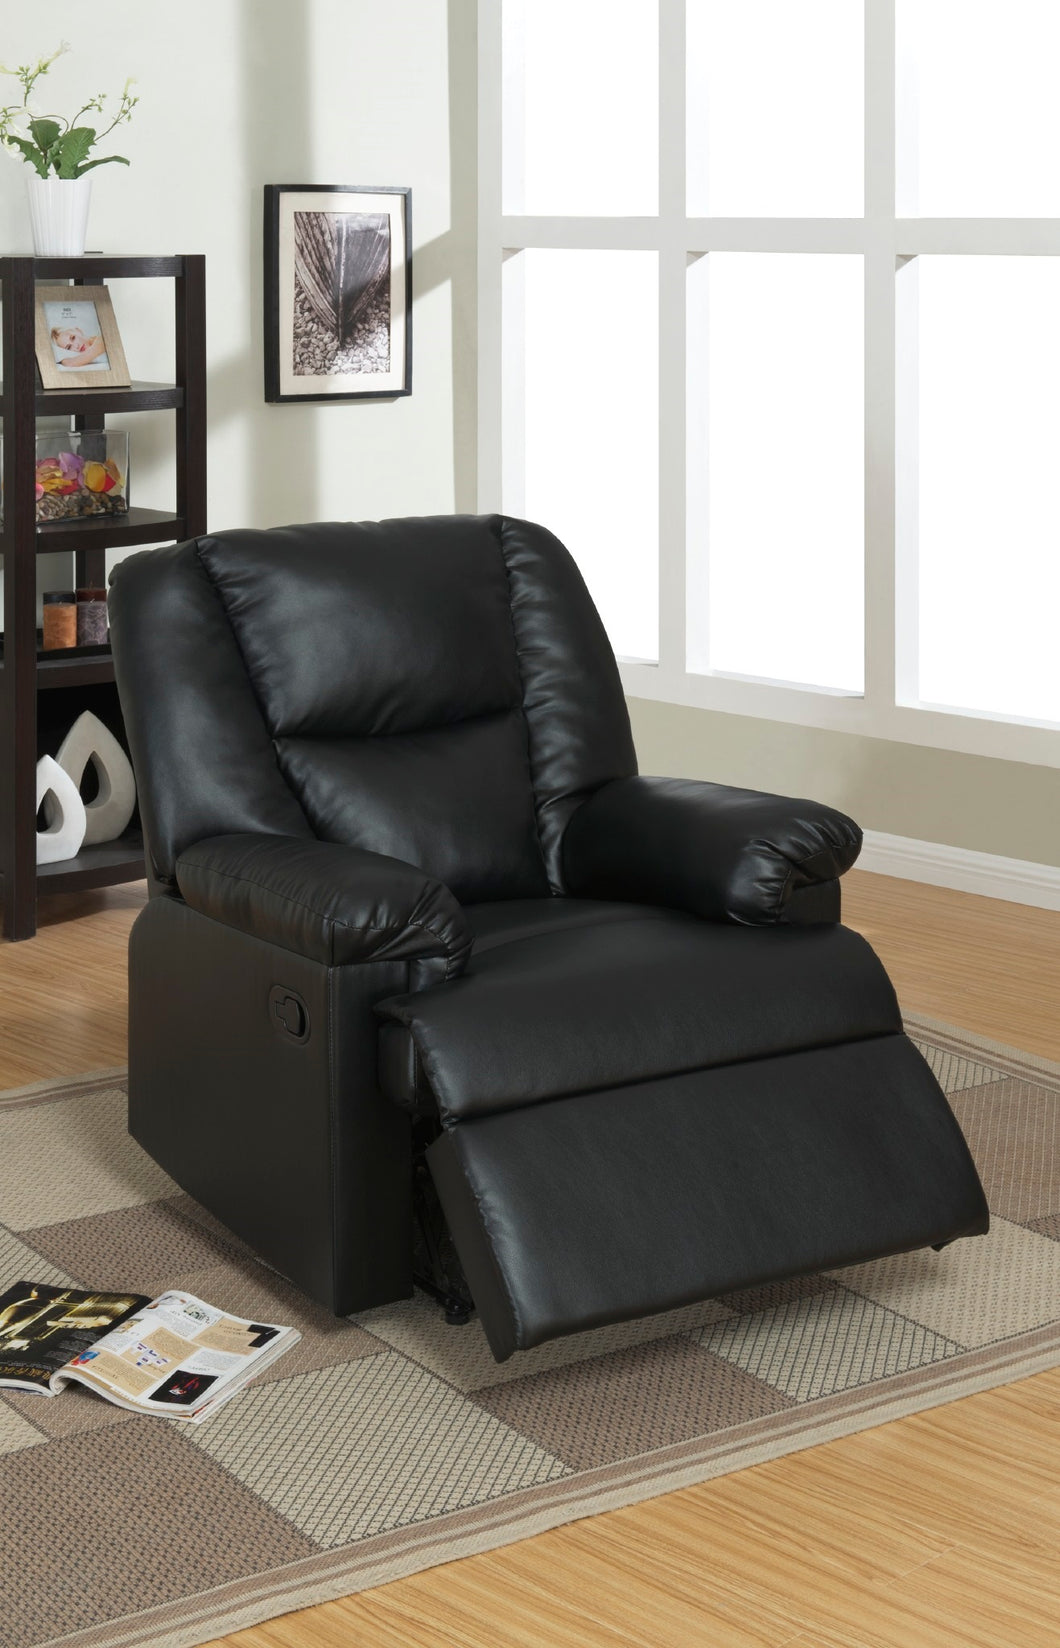 F7096 - Lucas Recliner Chair